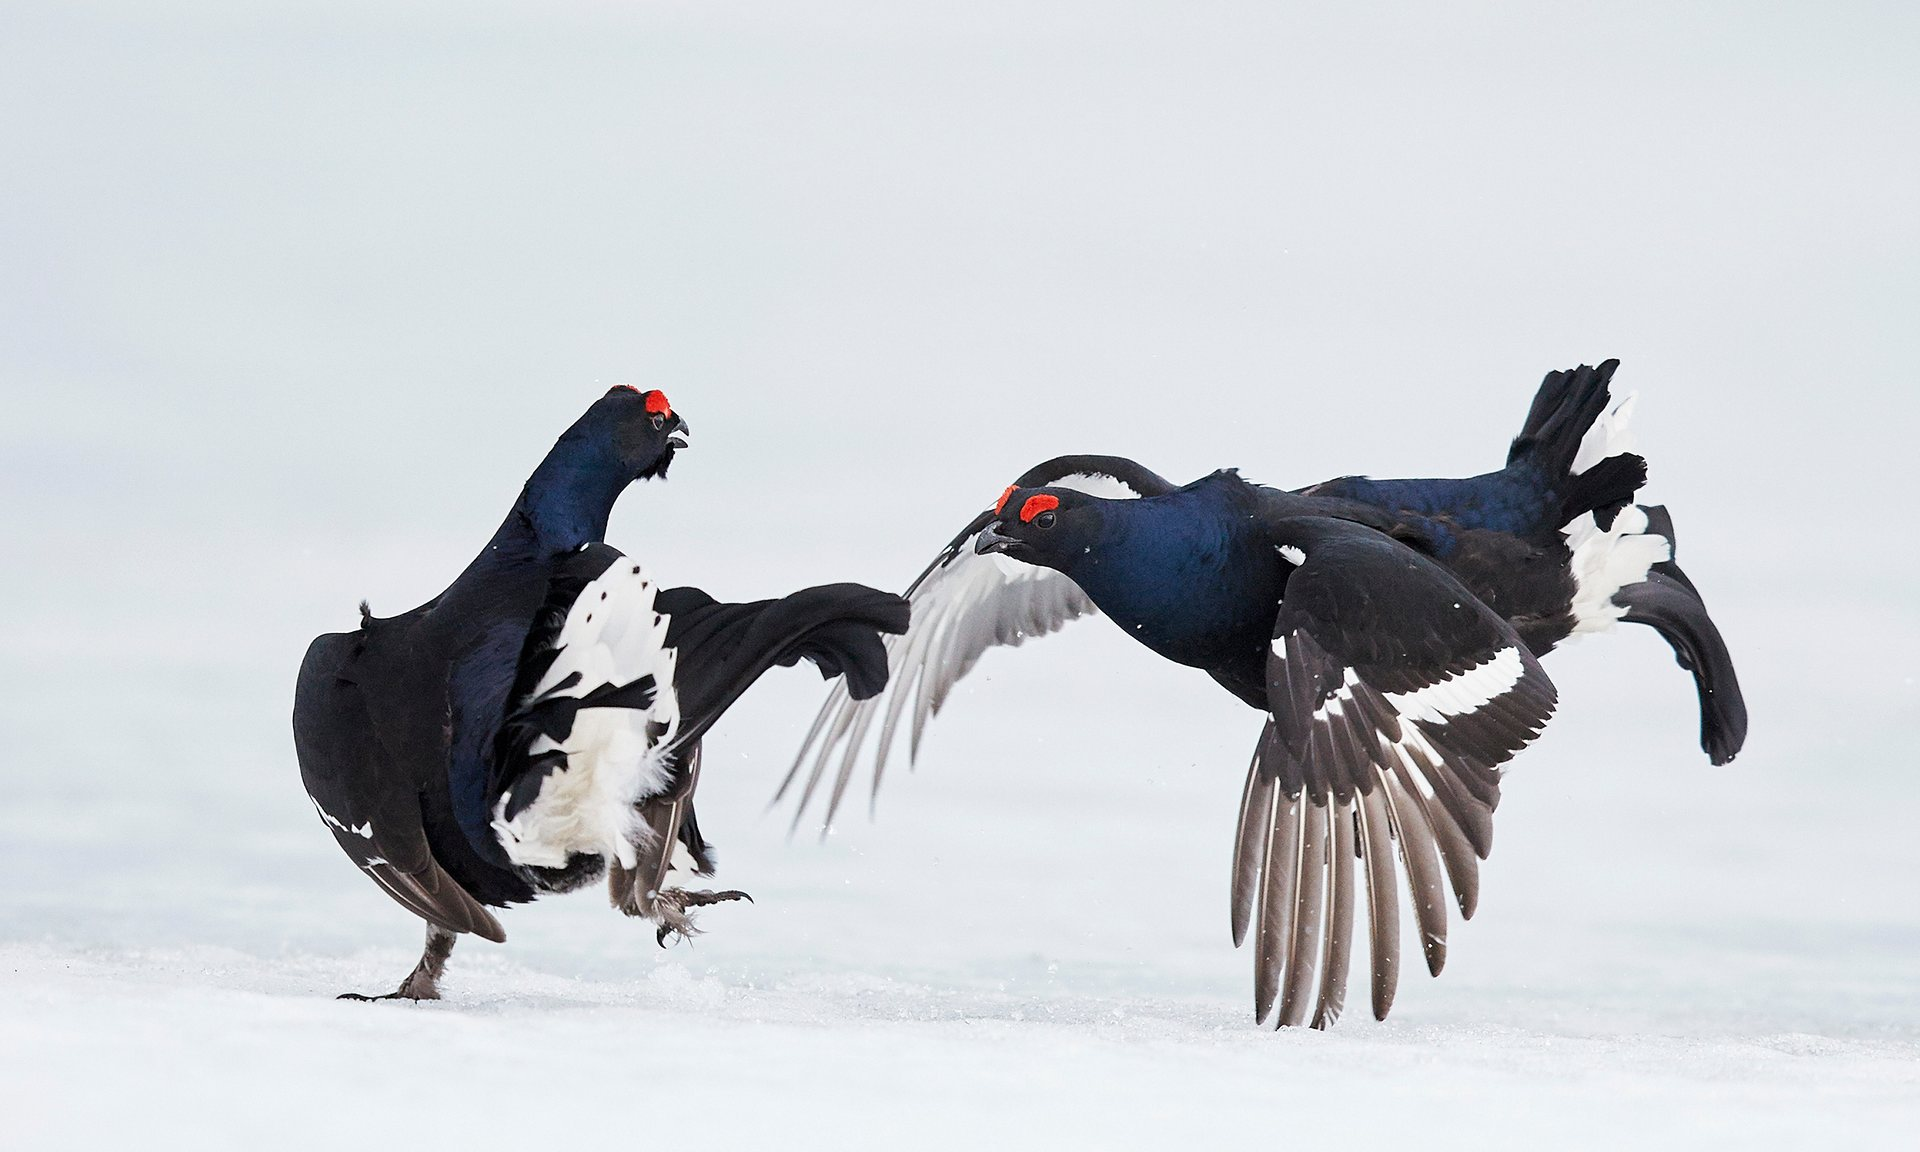 Black grouse fight in Vaala, Finland. The country is committed to protecting biodiversity under its implementation of the sustainable development goals. Photograph: Markus Varesvuo/NPL/Barcroft